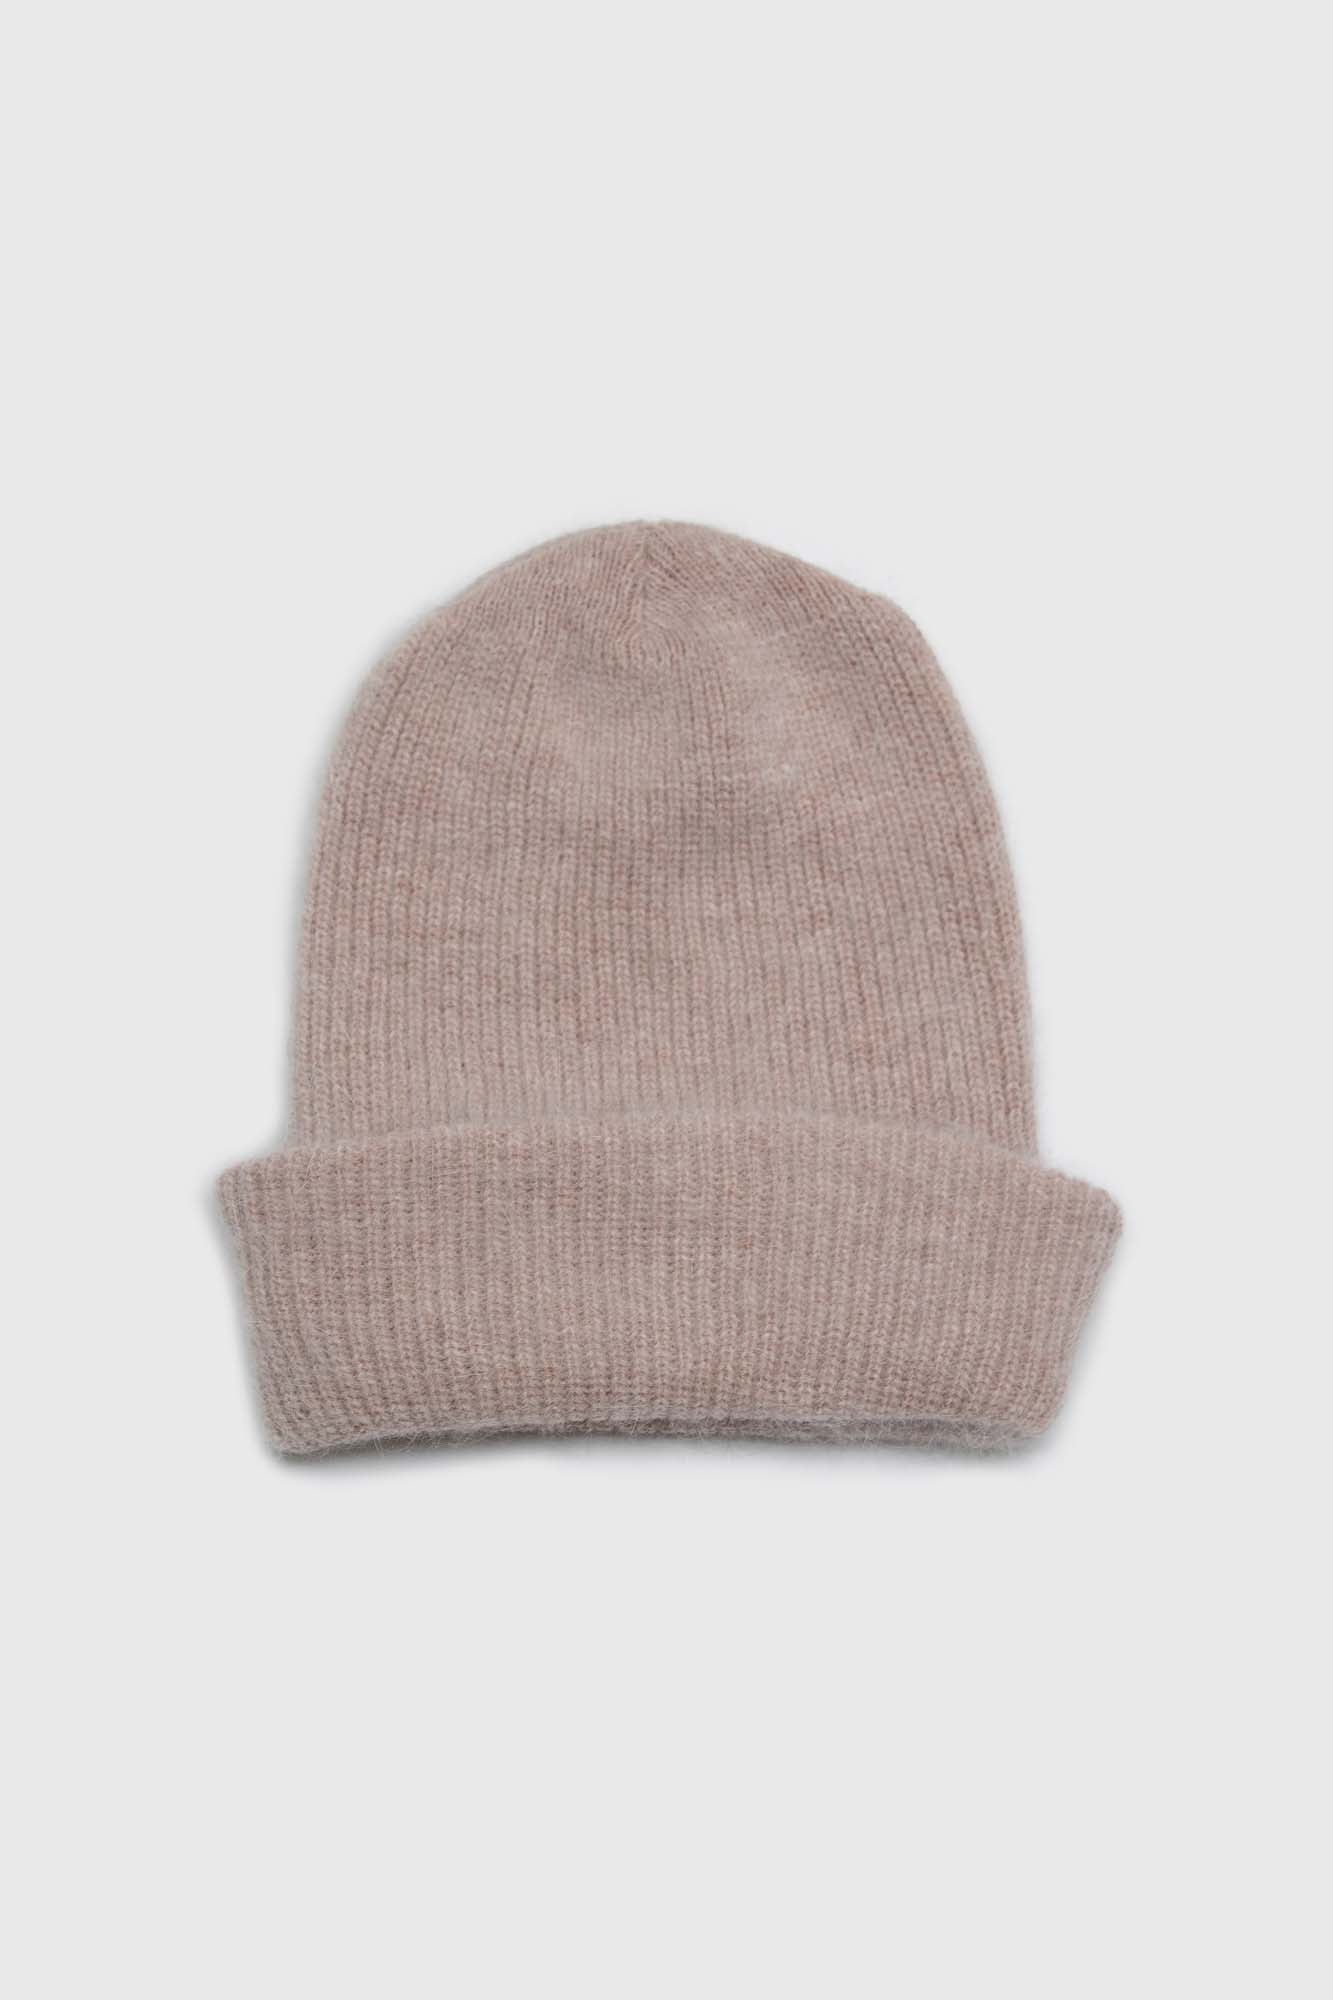 Light beige mohair beanie hat1sx